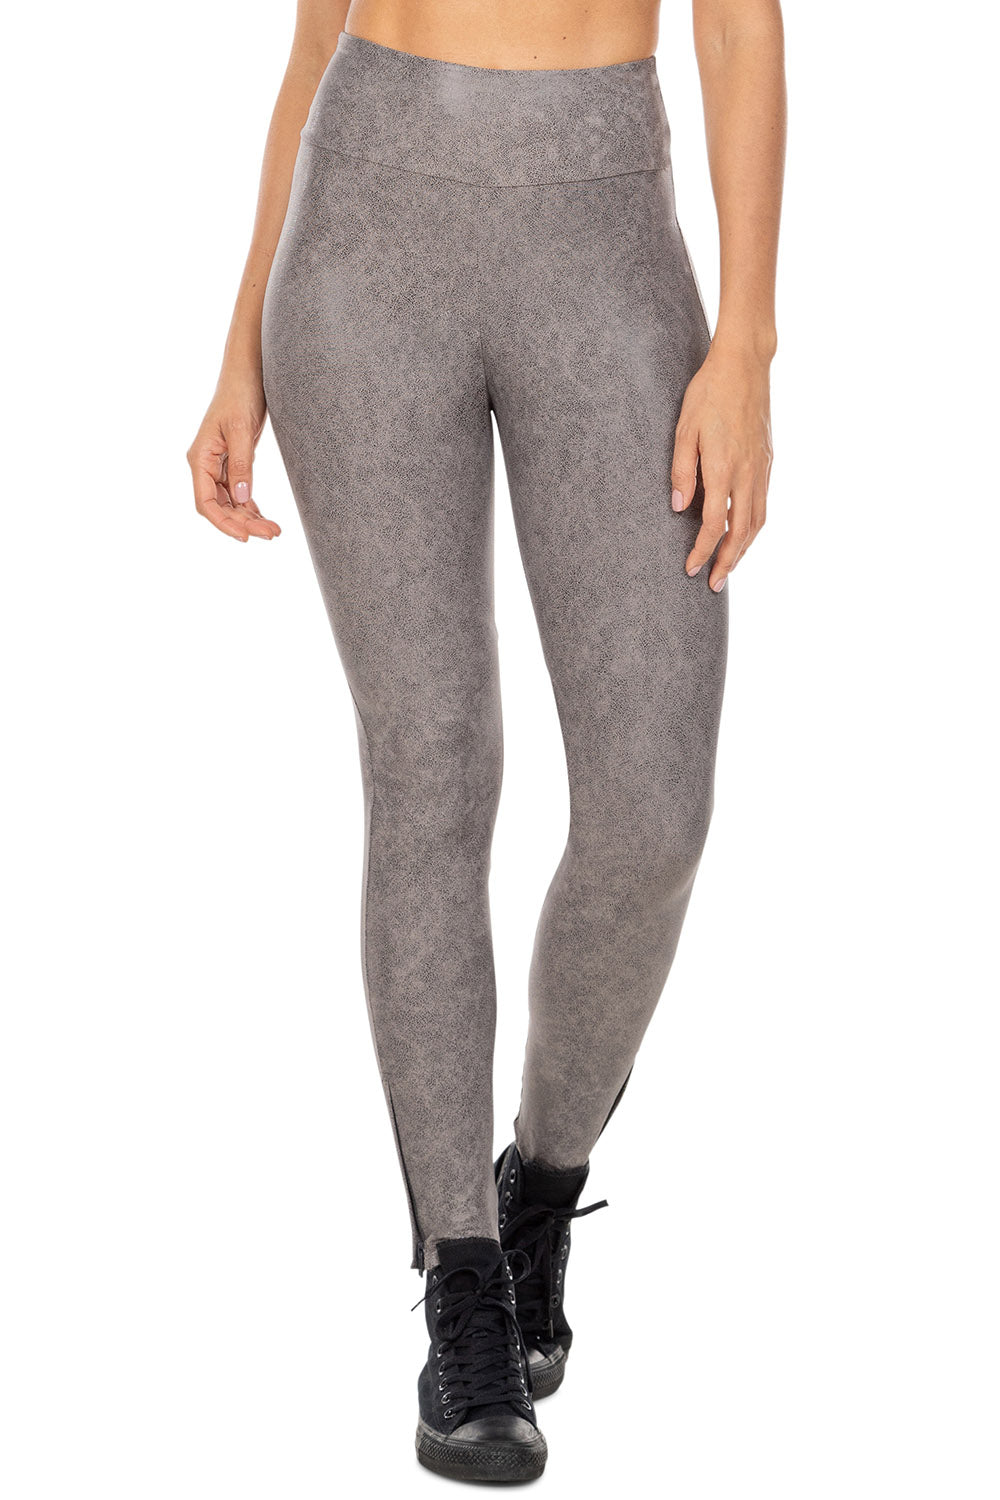 Urban Up Style Legging 1